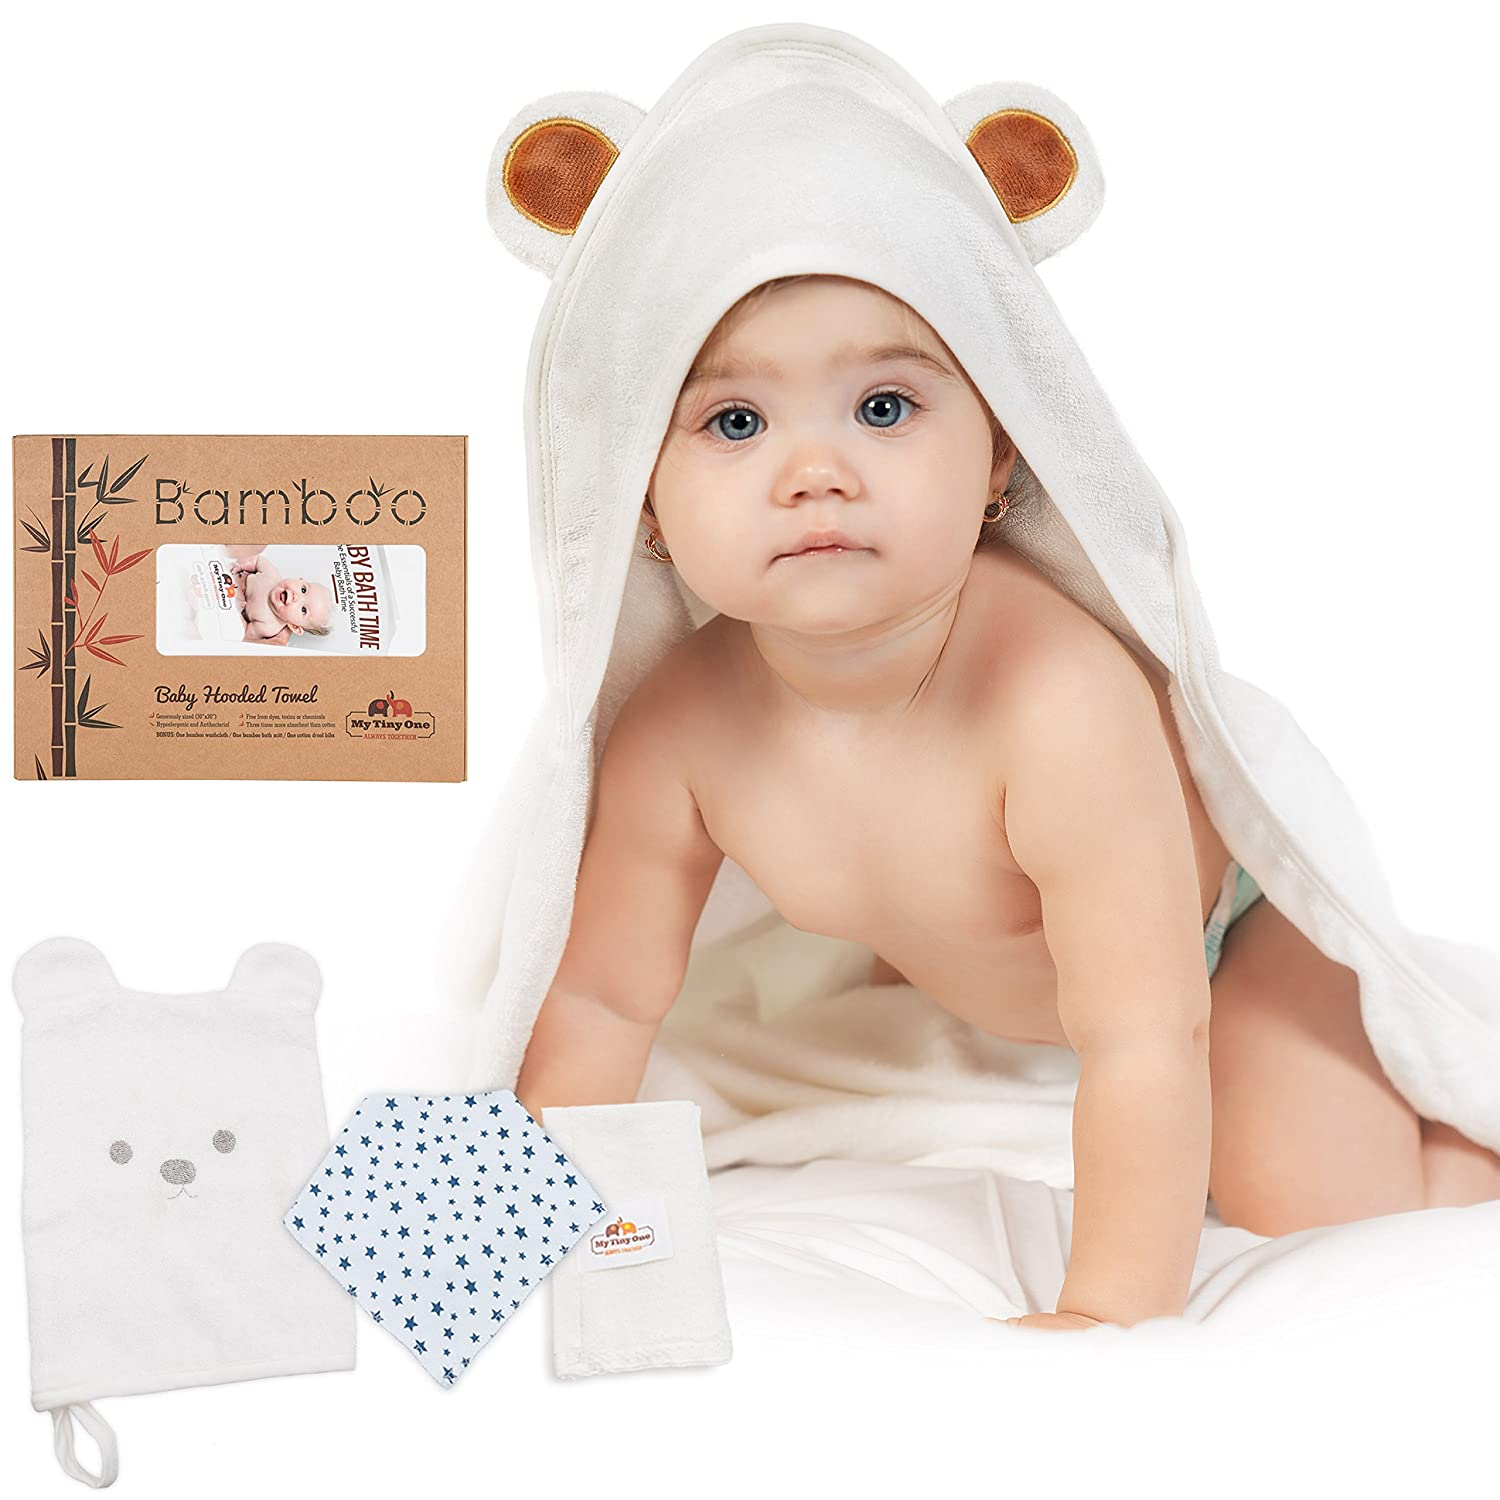 Large Hooded Baby Towel 100% Organic Bamboo | Softest Bath Towel + Washcloth Set for Girls & Boys | Perfect Size for Infants & Toddlers | Bonus 1 Bandana Drool + 1 Bamboo Bath Mitt MyTinyOne